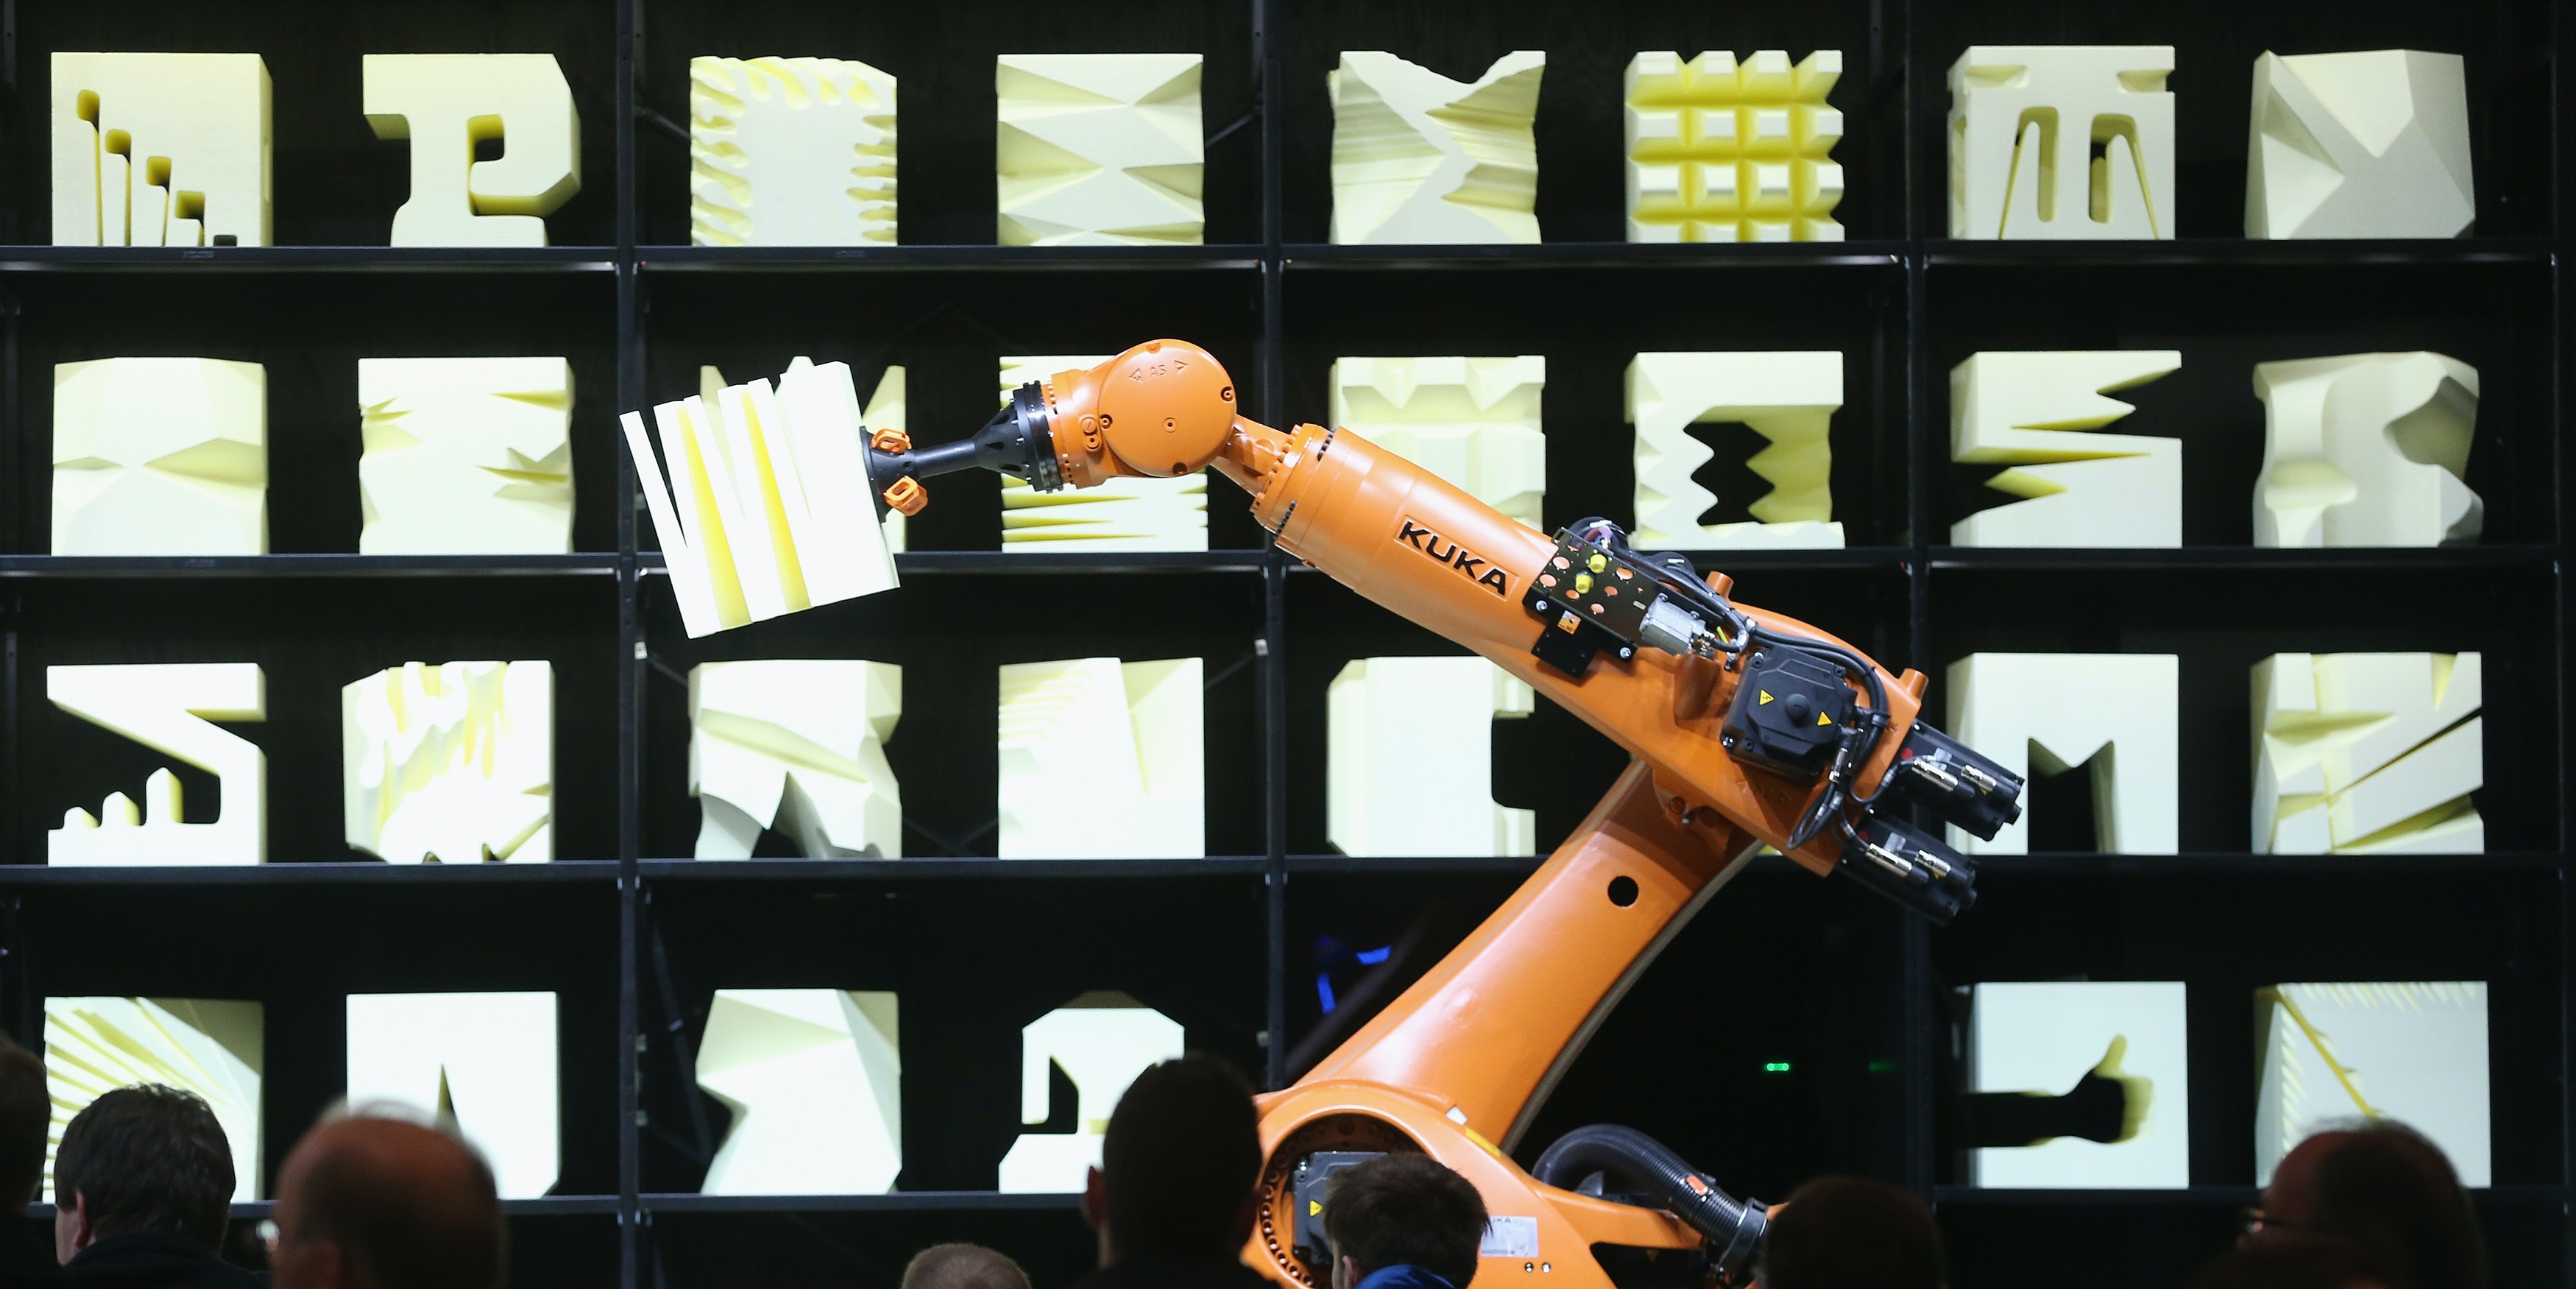 HANOVER, GERMANY - MARCH 16:  Visitors watch a Kuka robot perform precise movements as part of the Robochop interactive robot installation at the 2015 CeBIT technology trade fair on March 16, 2015 in Hanover, Germany. China is this year's CeBIT partner. CeBIT is the world's largest tech fair and will be open from March 16 through March 20.  (Photo by Sean Gallup/Getty Images)